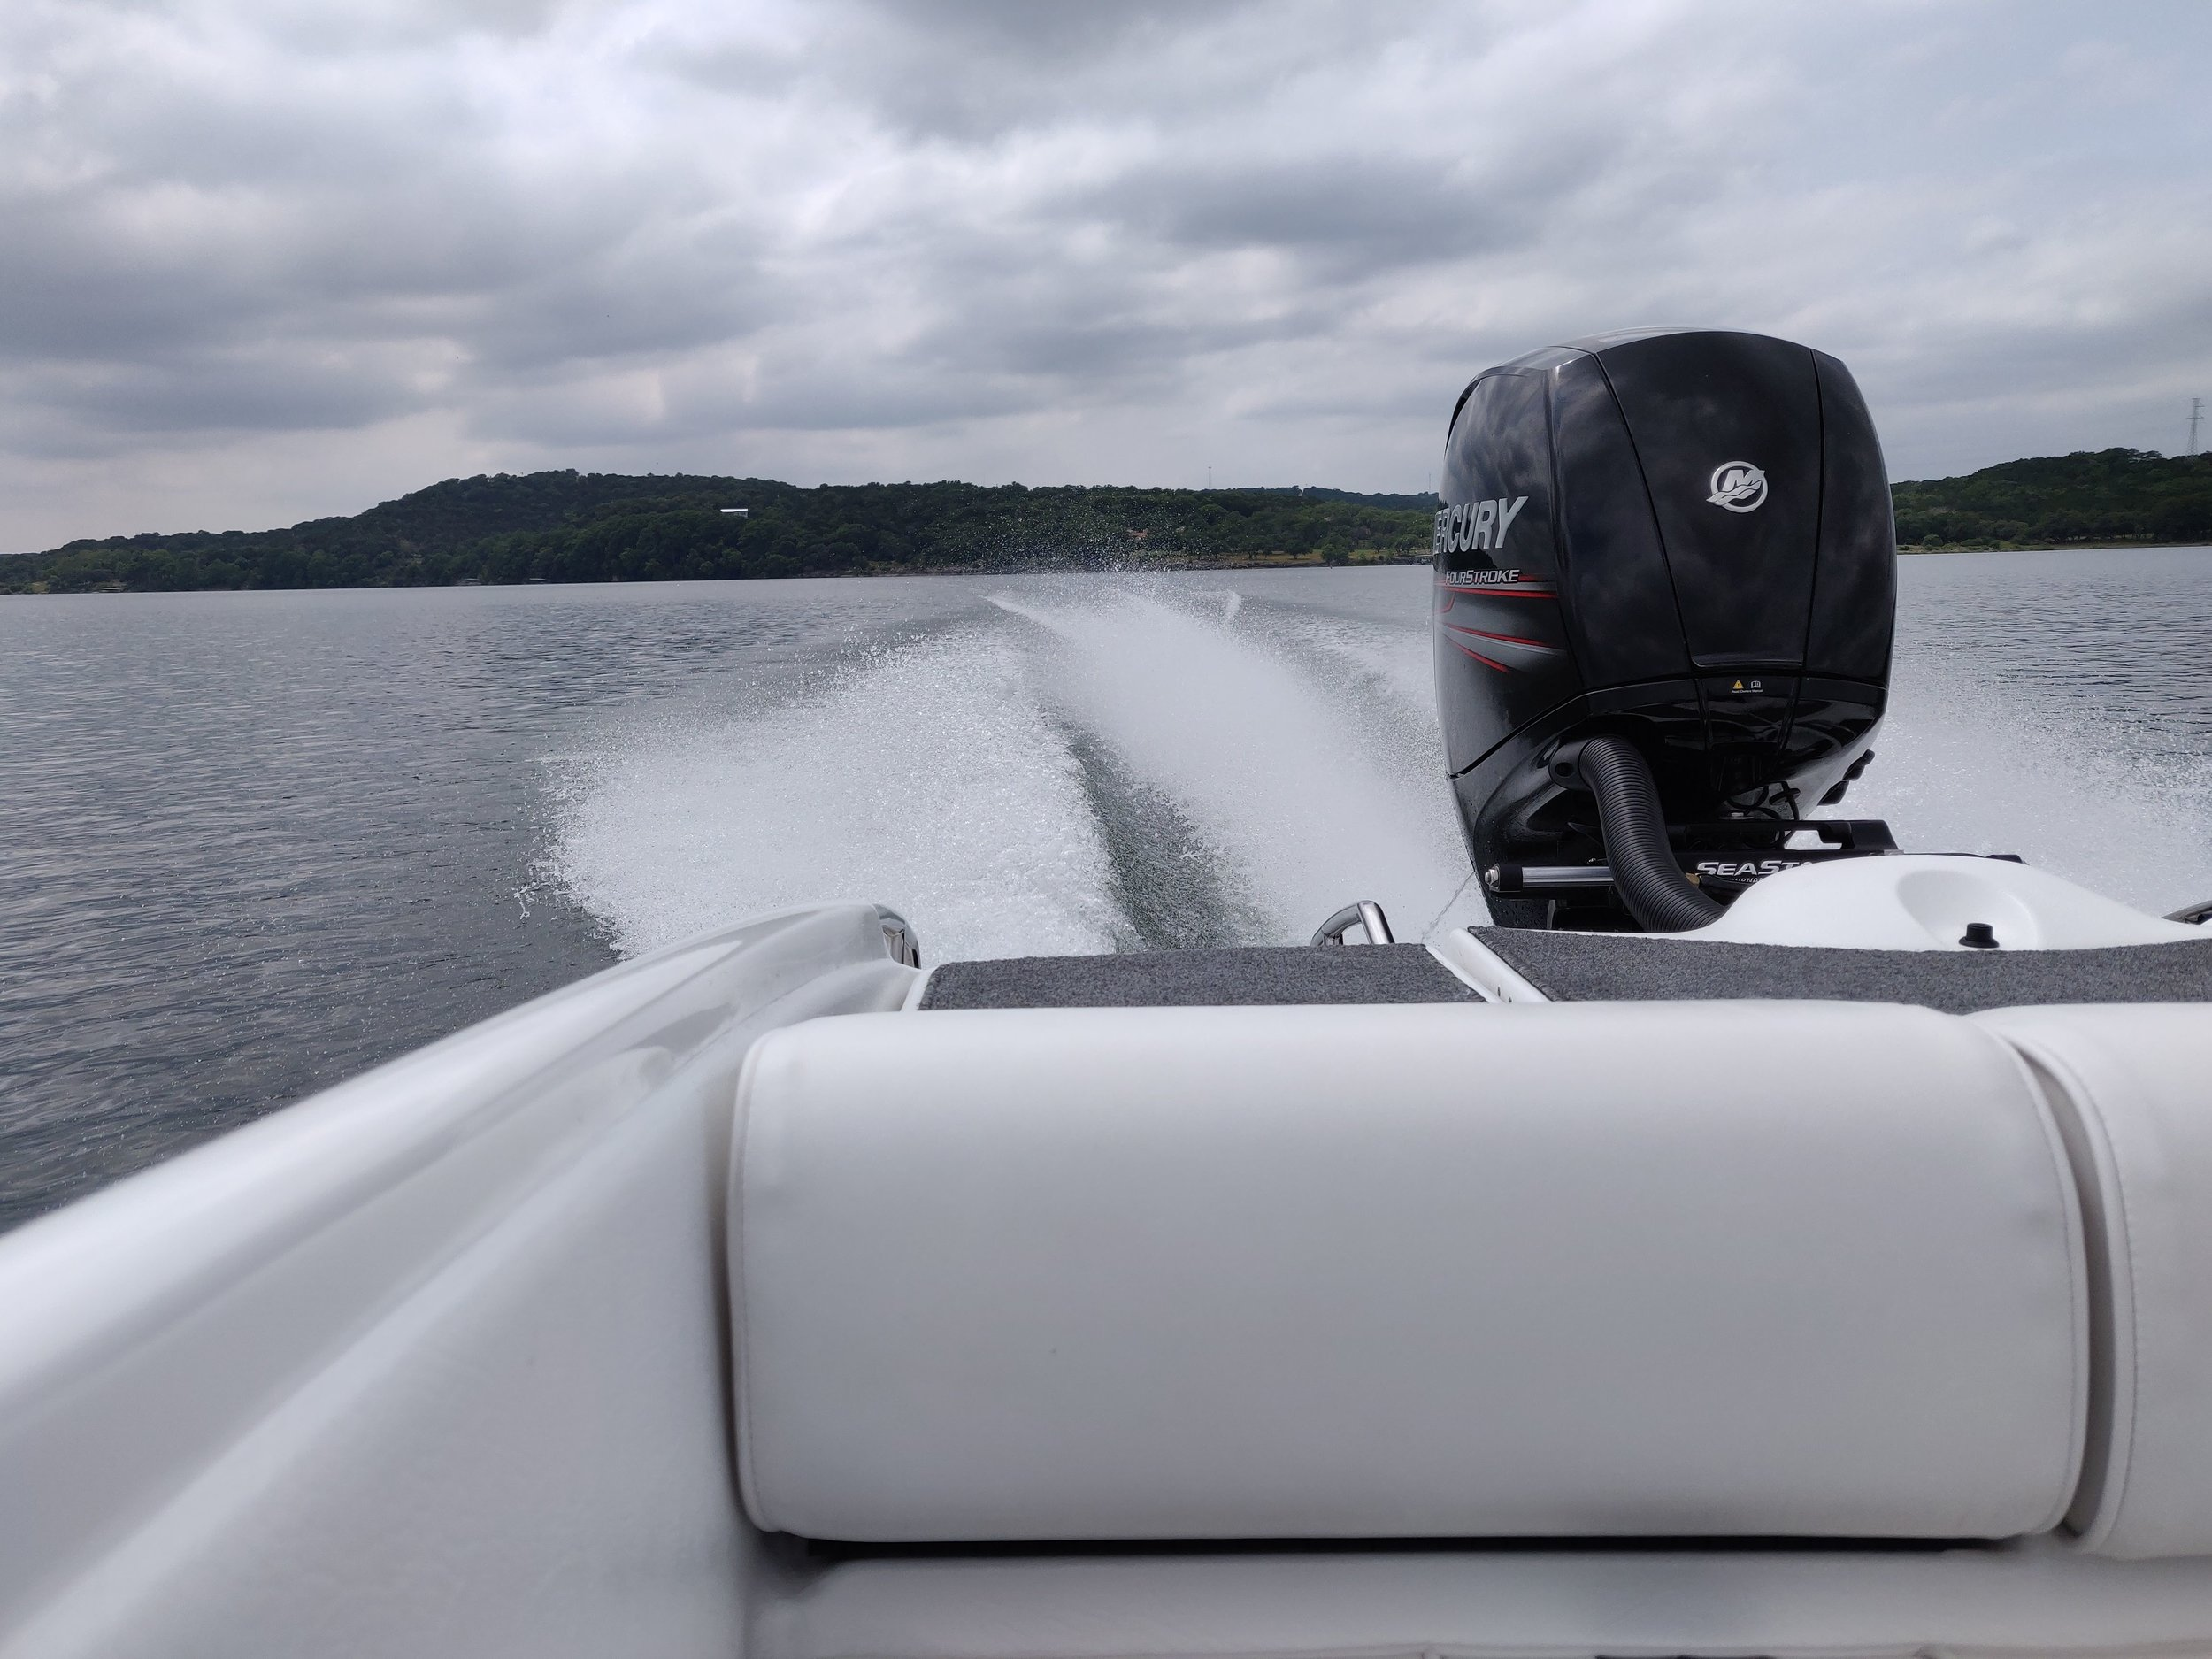 The Mercury 150 HP four stroke works well on this hull. If it had solid mounts, and higher gears, it would be excellent. Being only a 150 HP, you give up top speed, and acceleration, but the new engines are so quiet and efficient. There is very little maintenance, making the Mercury outboard economical to operate.